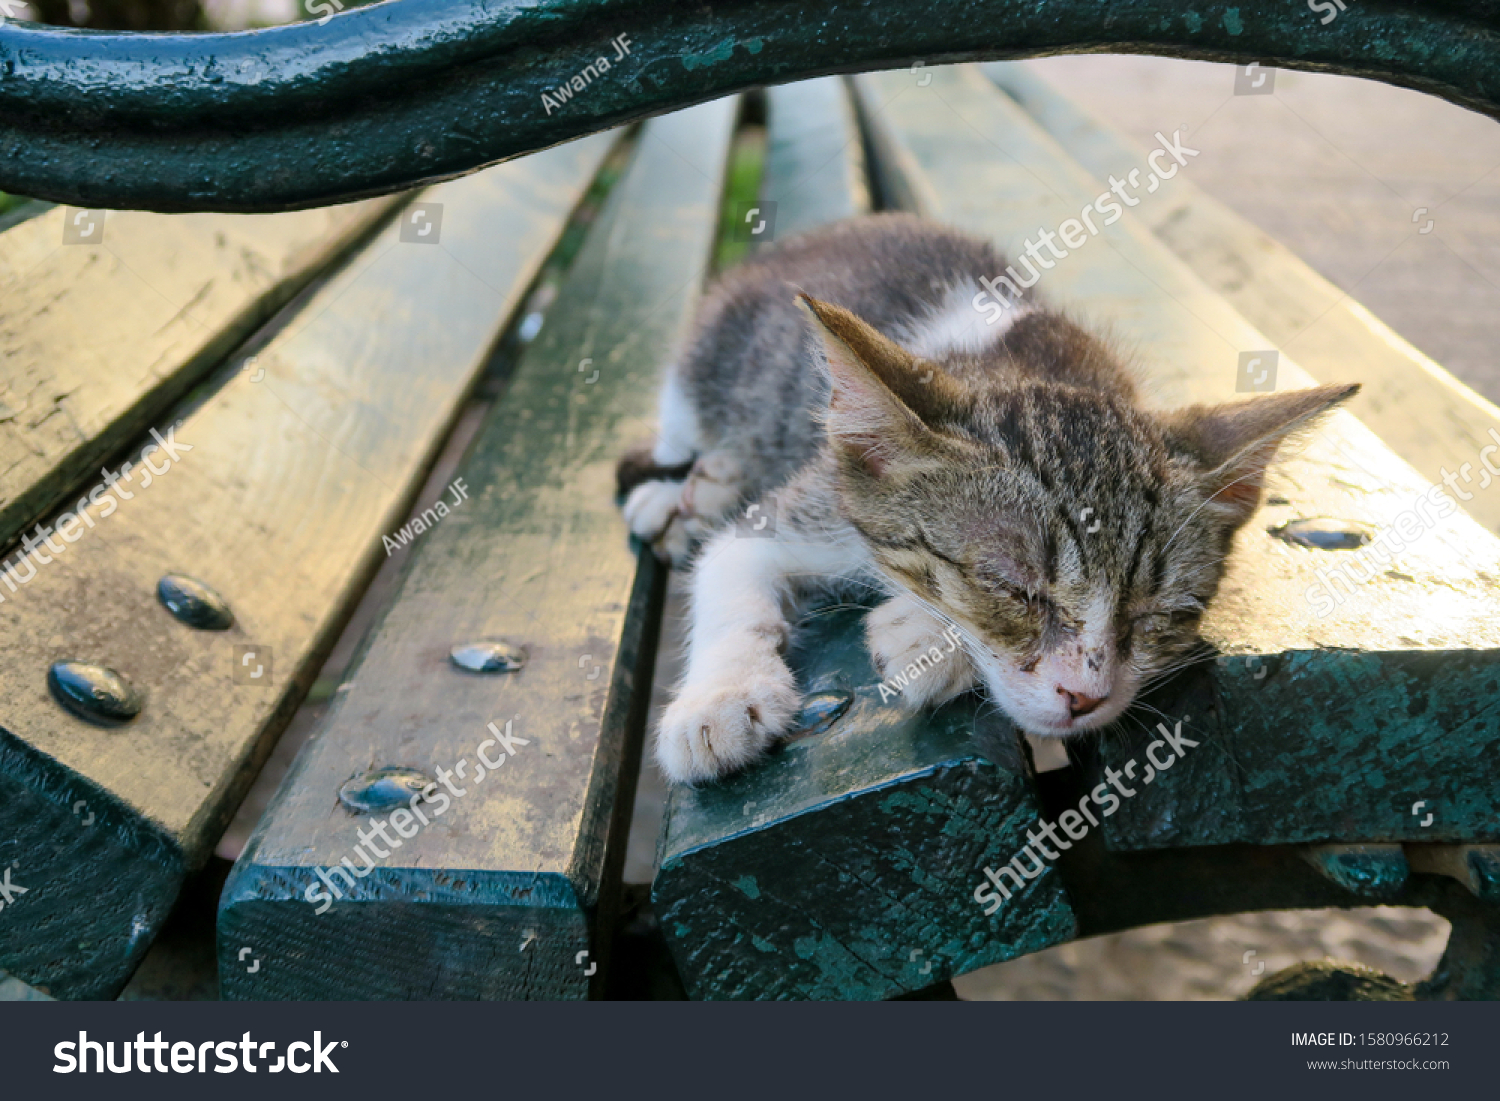 stock-photo-cute-cate-sleeping-on-a-benc